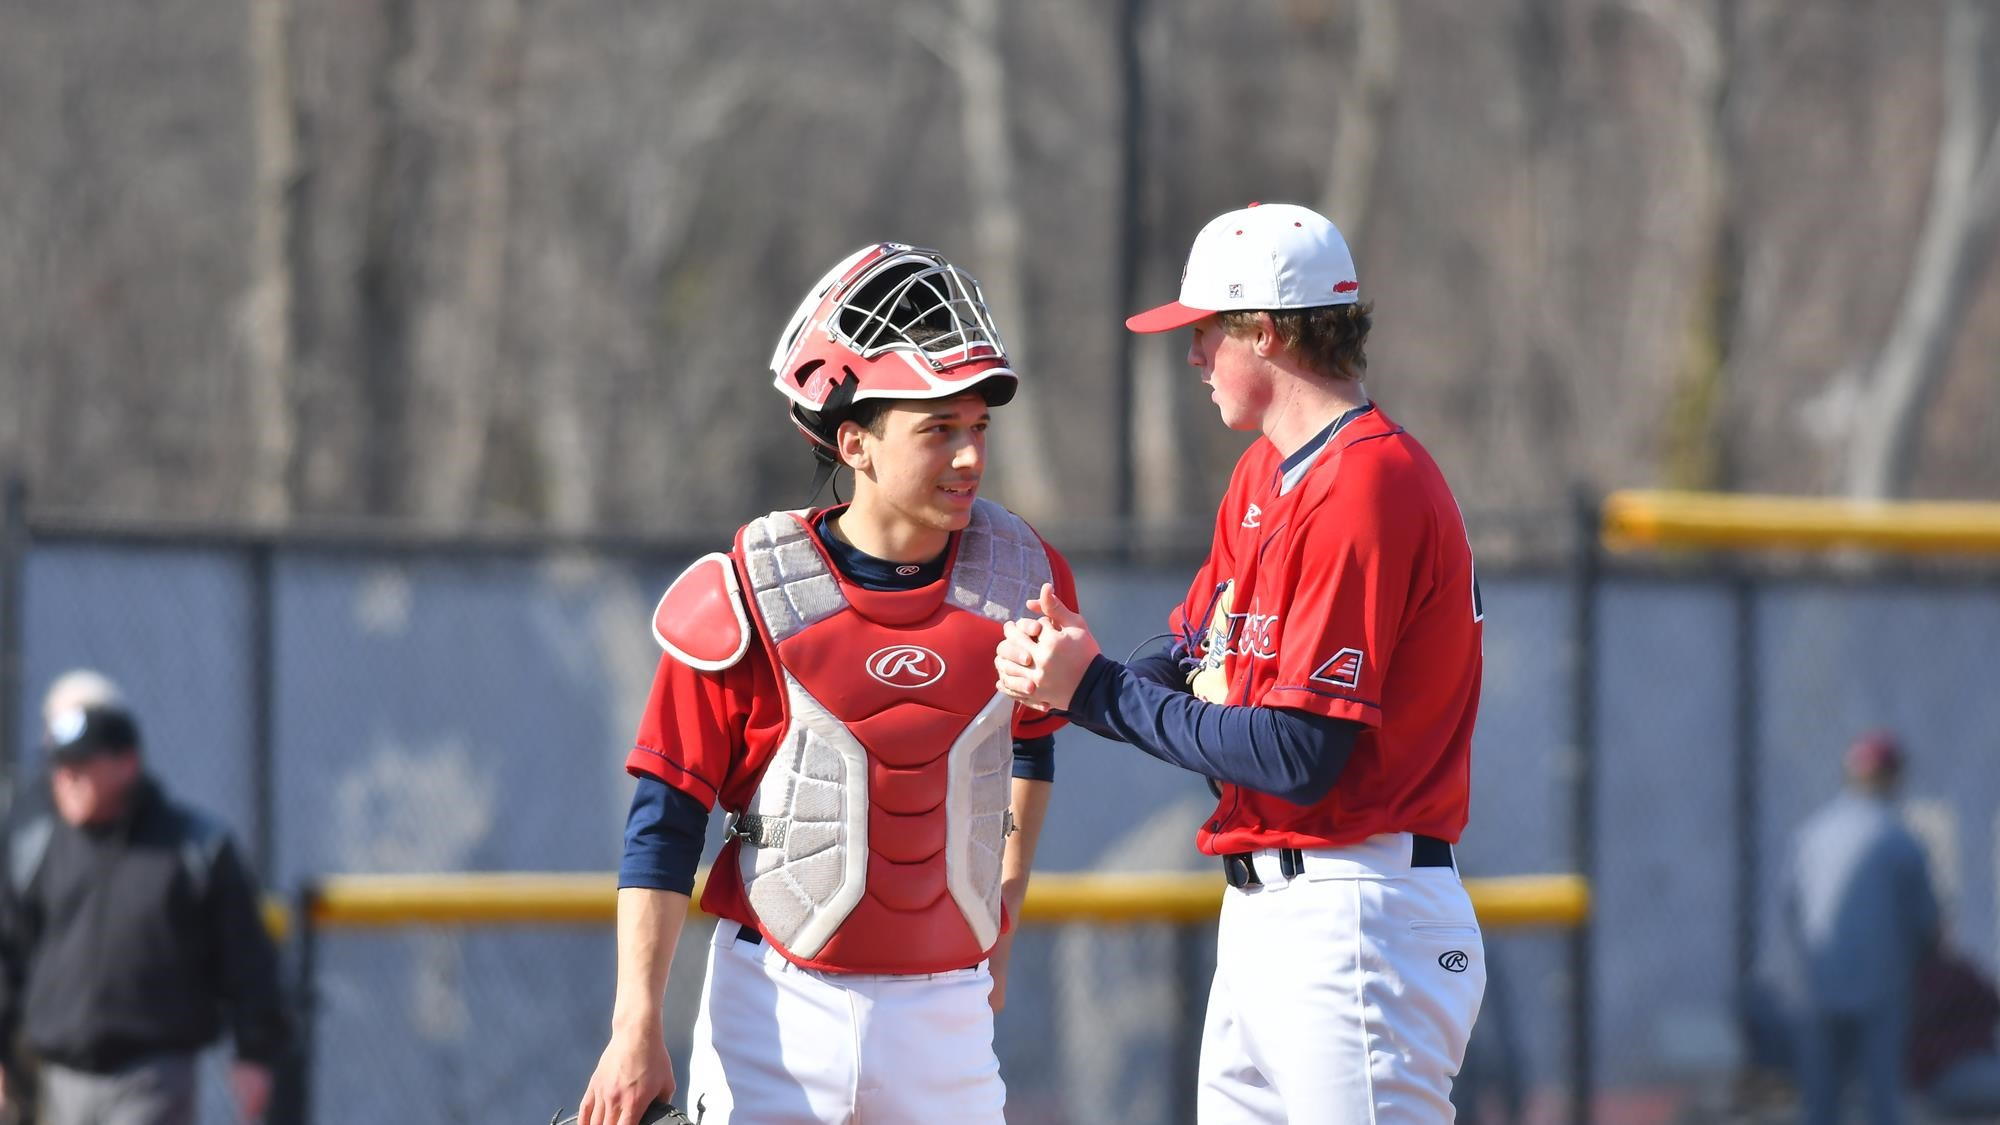 Sam Turcotte (Toronto, Ont.), pictured on the right, had a win and a save for the Stony Brook Seawolves. Photo: Stony Brook Athletics